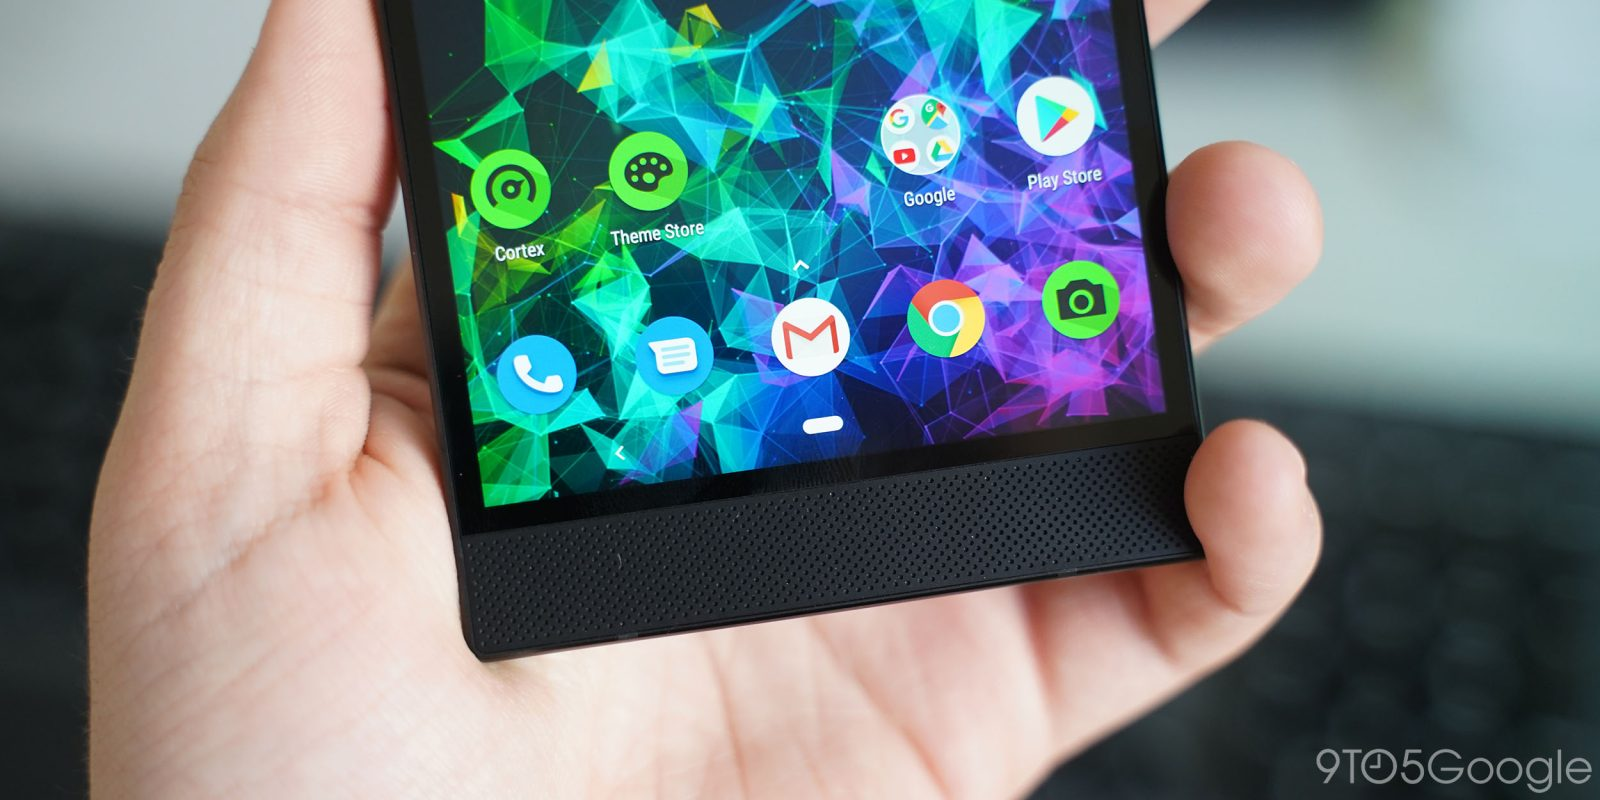 Android Pie available for Razer Phone 2 w/ Digital Wellbeing